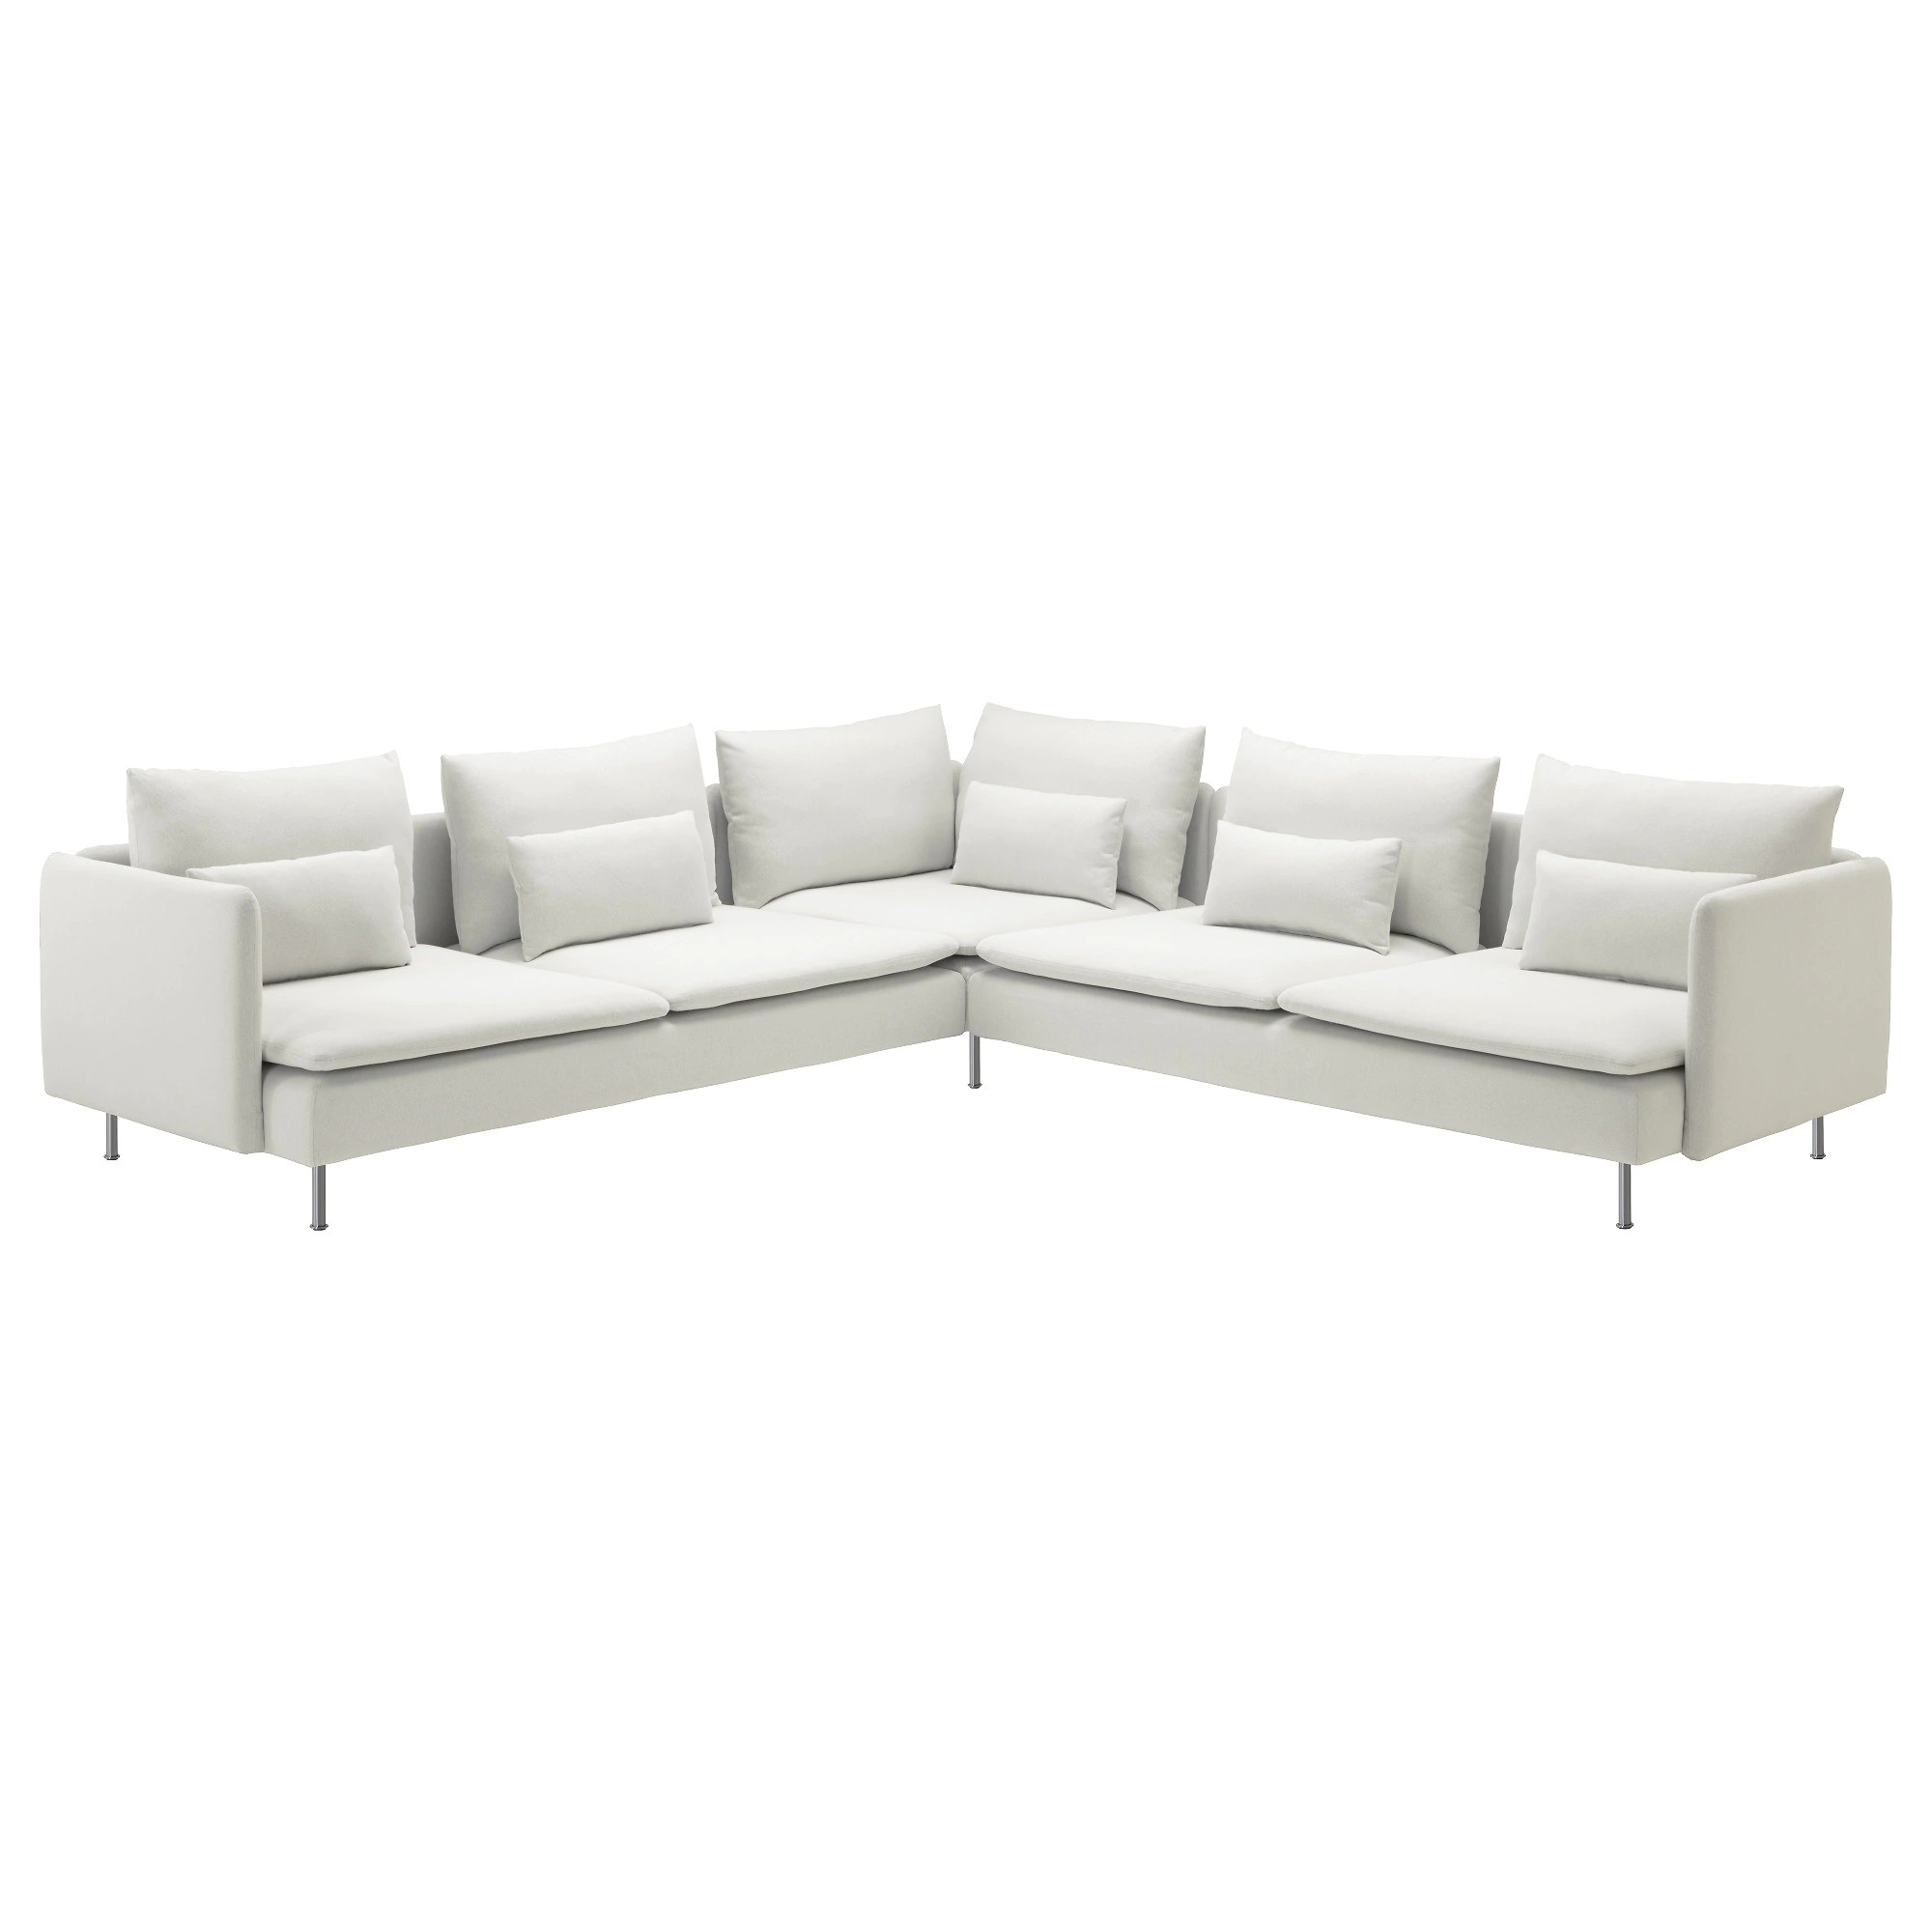 Sectional Corner Couch SÖderhamn Sectional 5 Seat Finnsta White